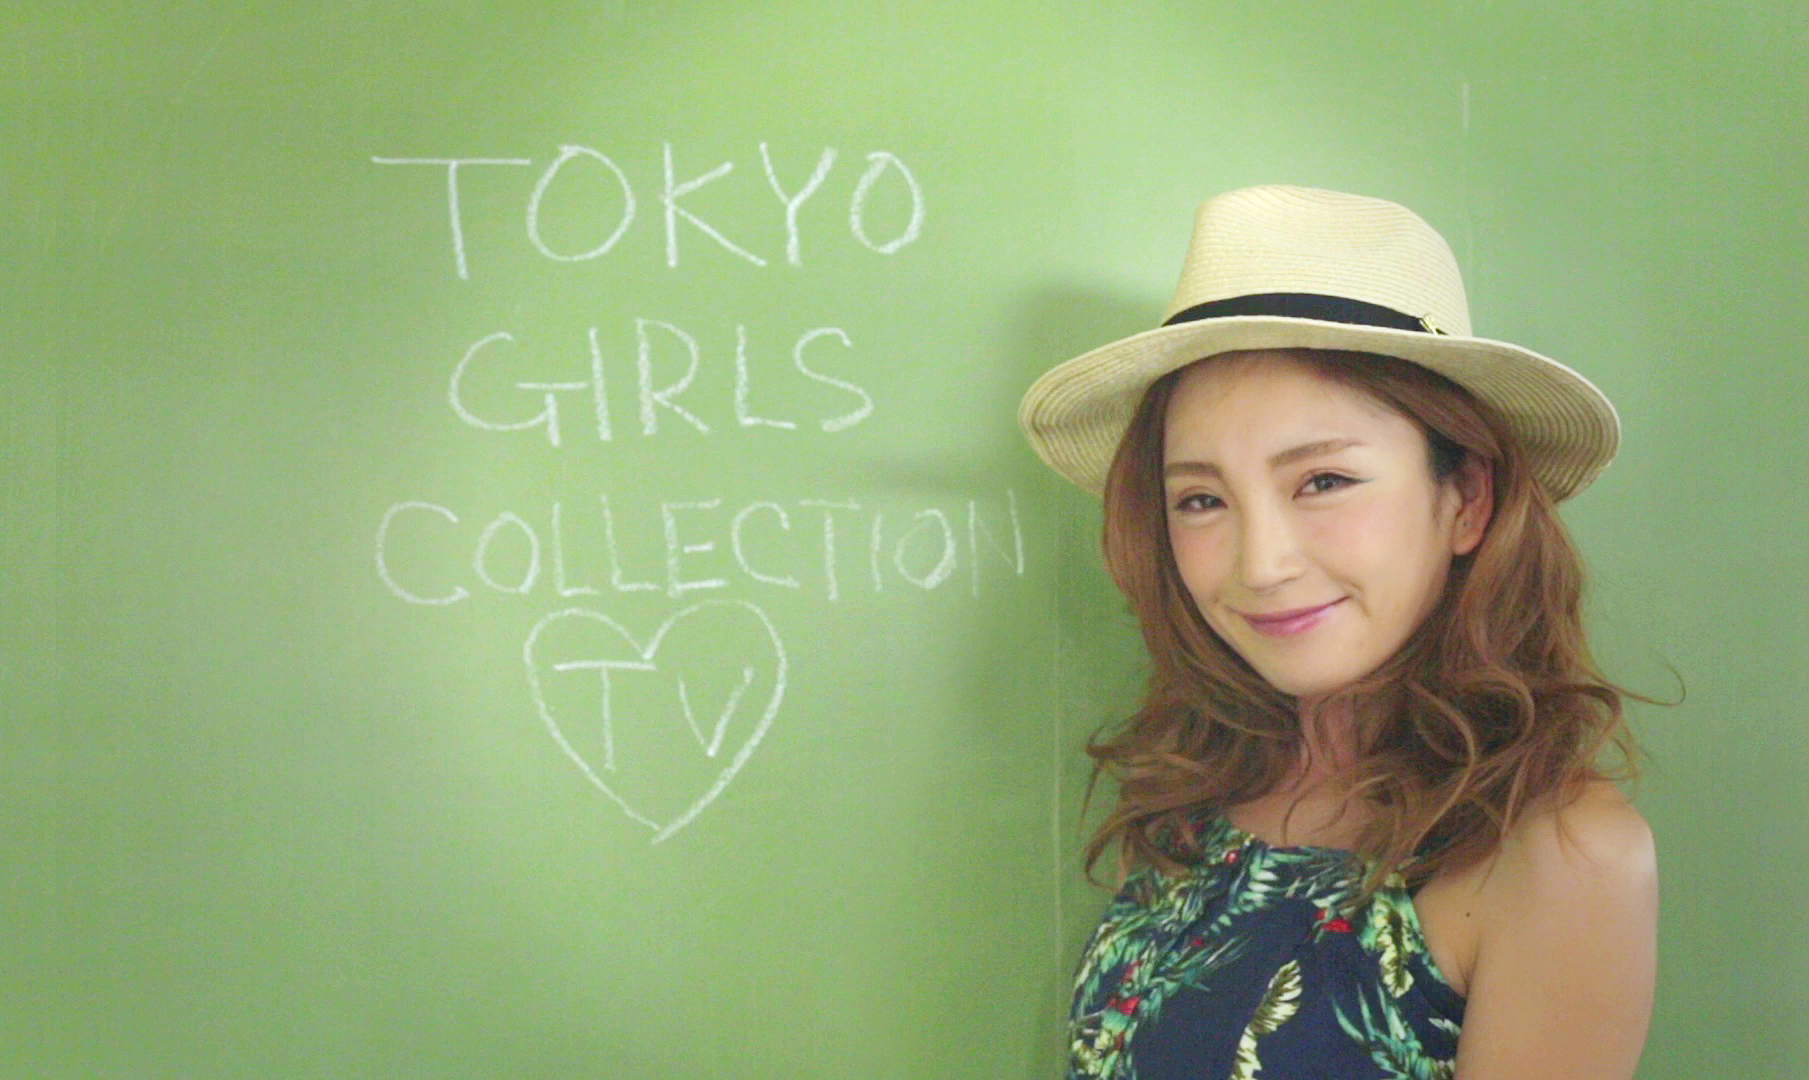 【番組】TOKYO GIRLS COLLECTION TV(2015/10mm)